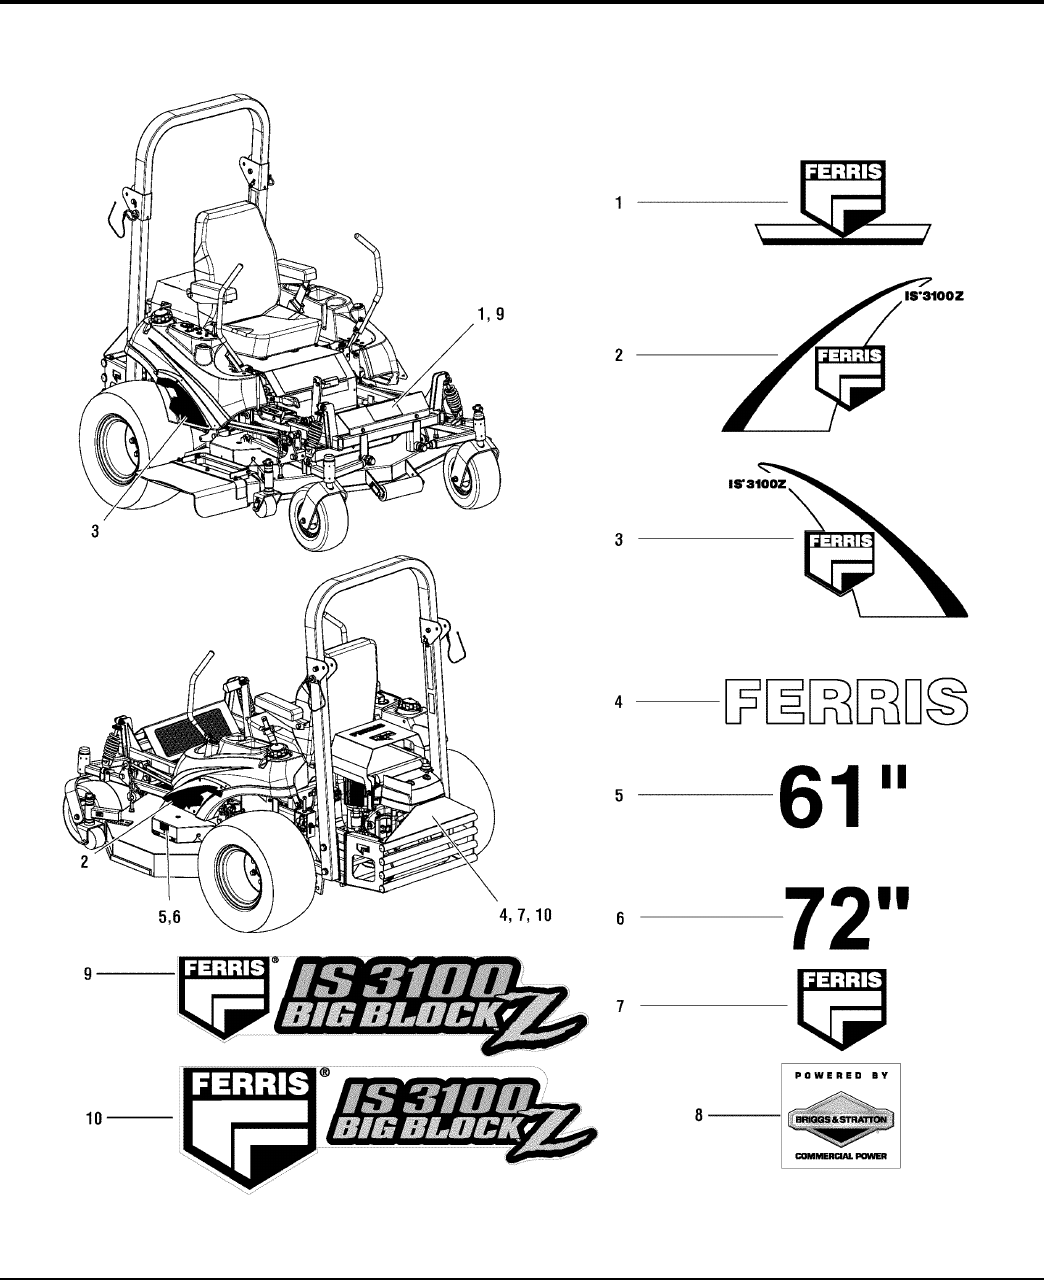 Ferris Lawn Mower Wiring Diagram. . Wiring Diagram